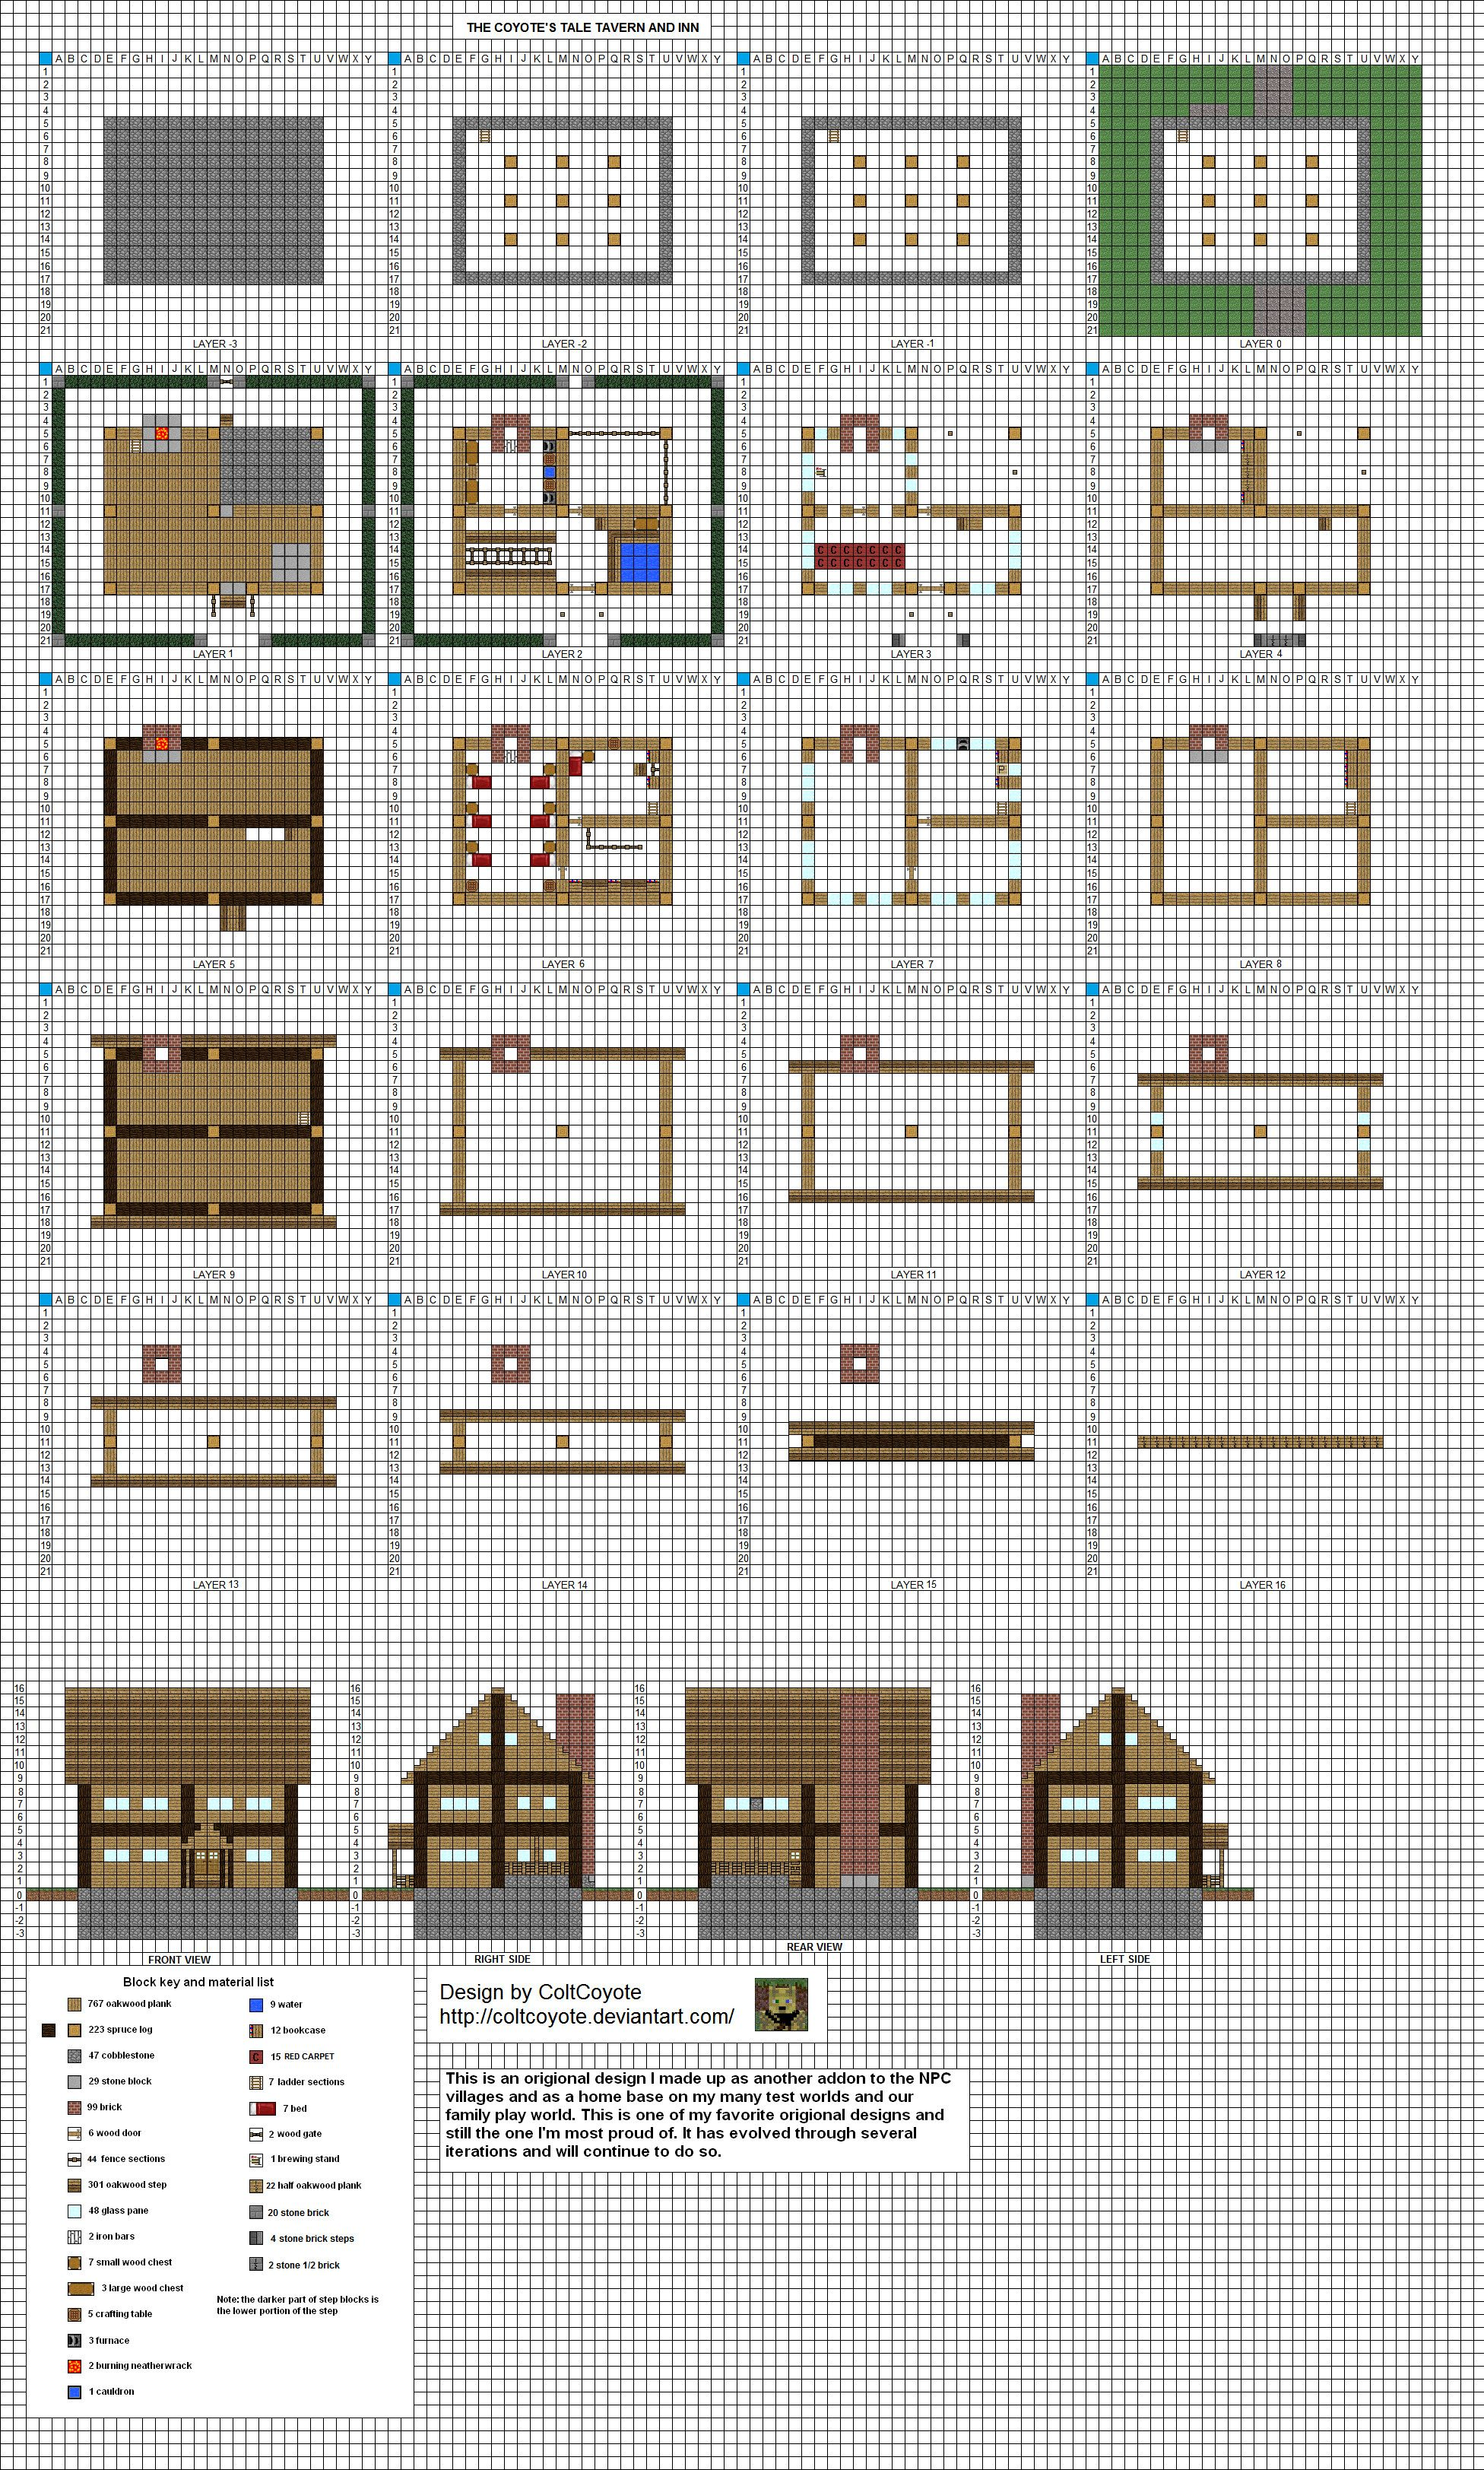 Small inn mk3 by on deviantart for Tiny house blueprint maker